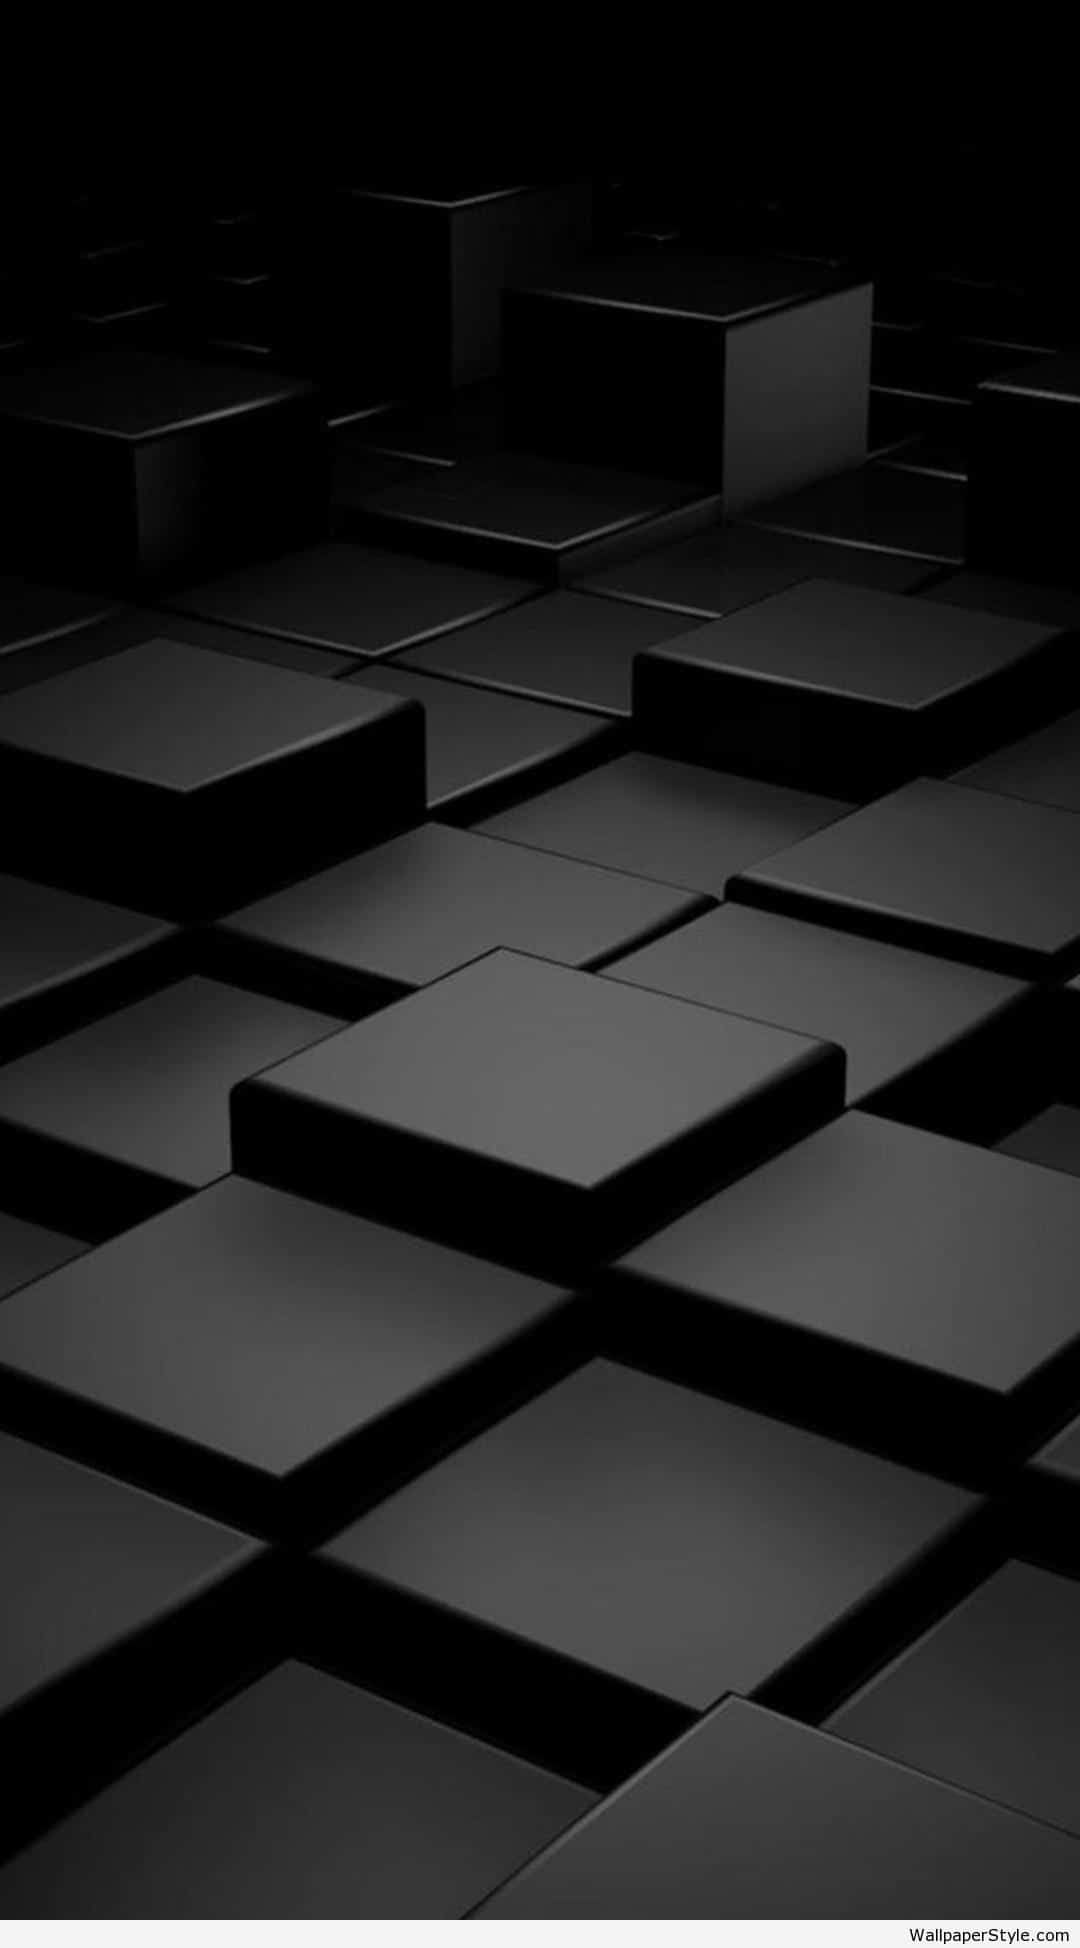 Abstract Dark  Widescreen Desktop Mobile Iphone Android Hd Wallpaper And Desktop Android D Wallpapers For